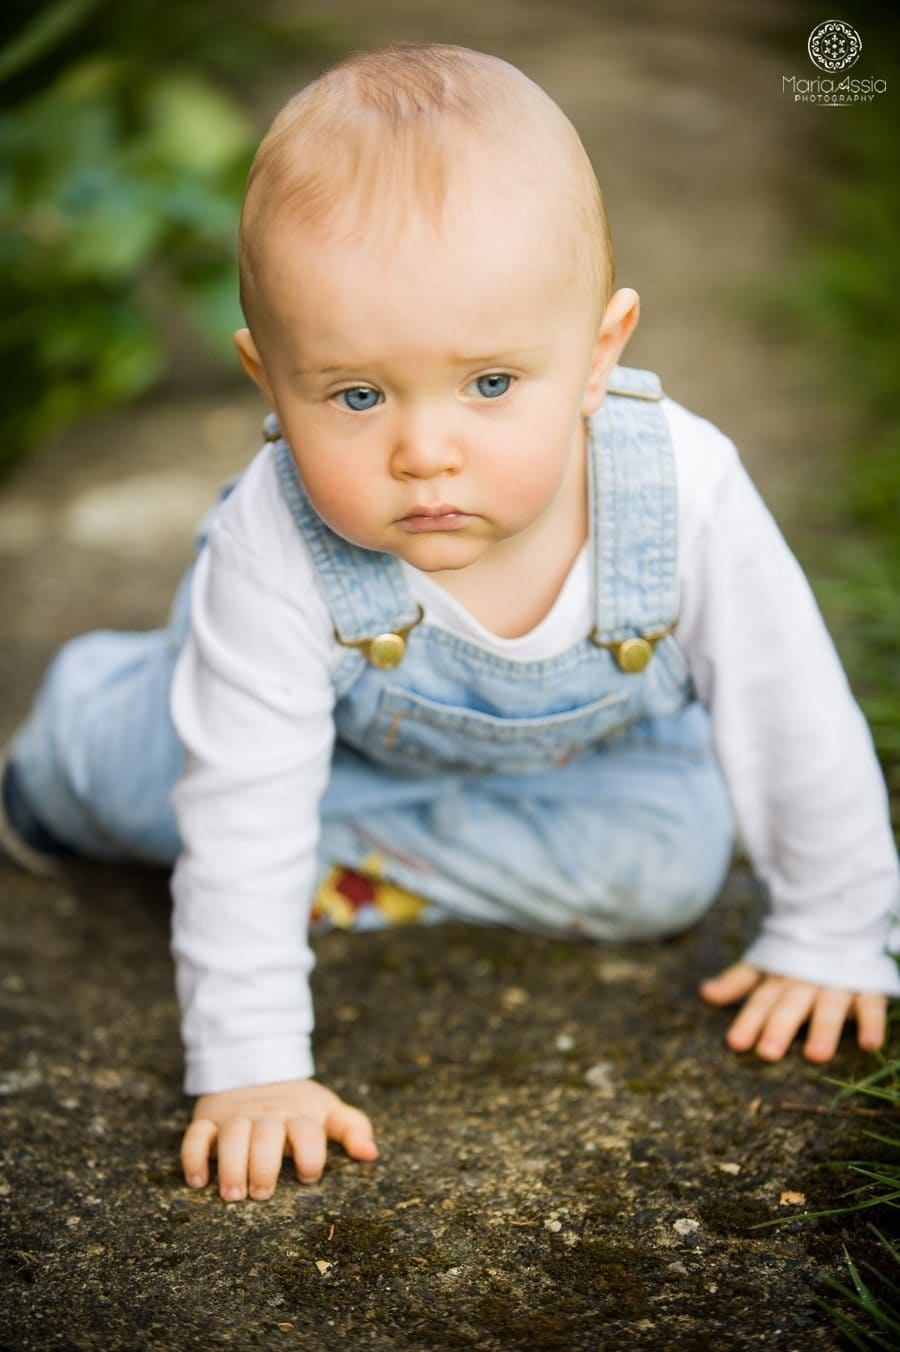 documentary family photography of a toddler crawling in the garden